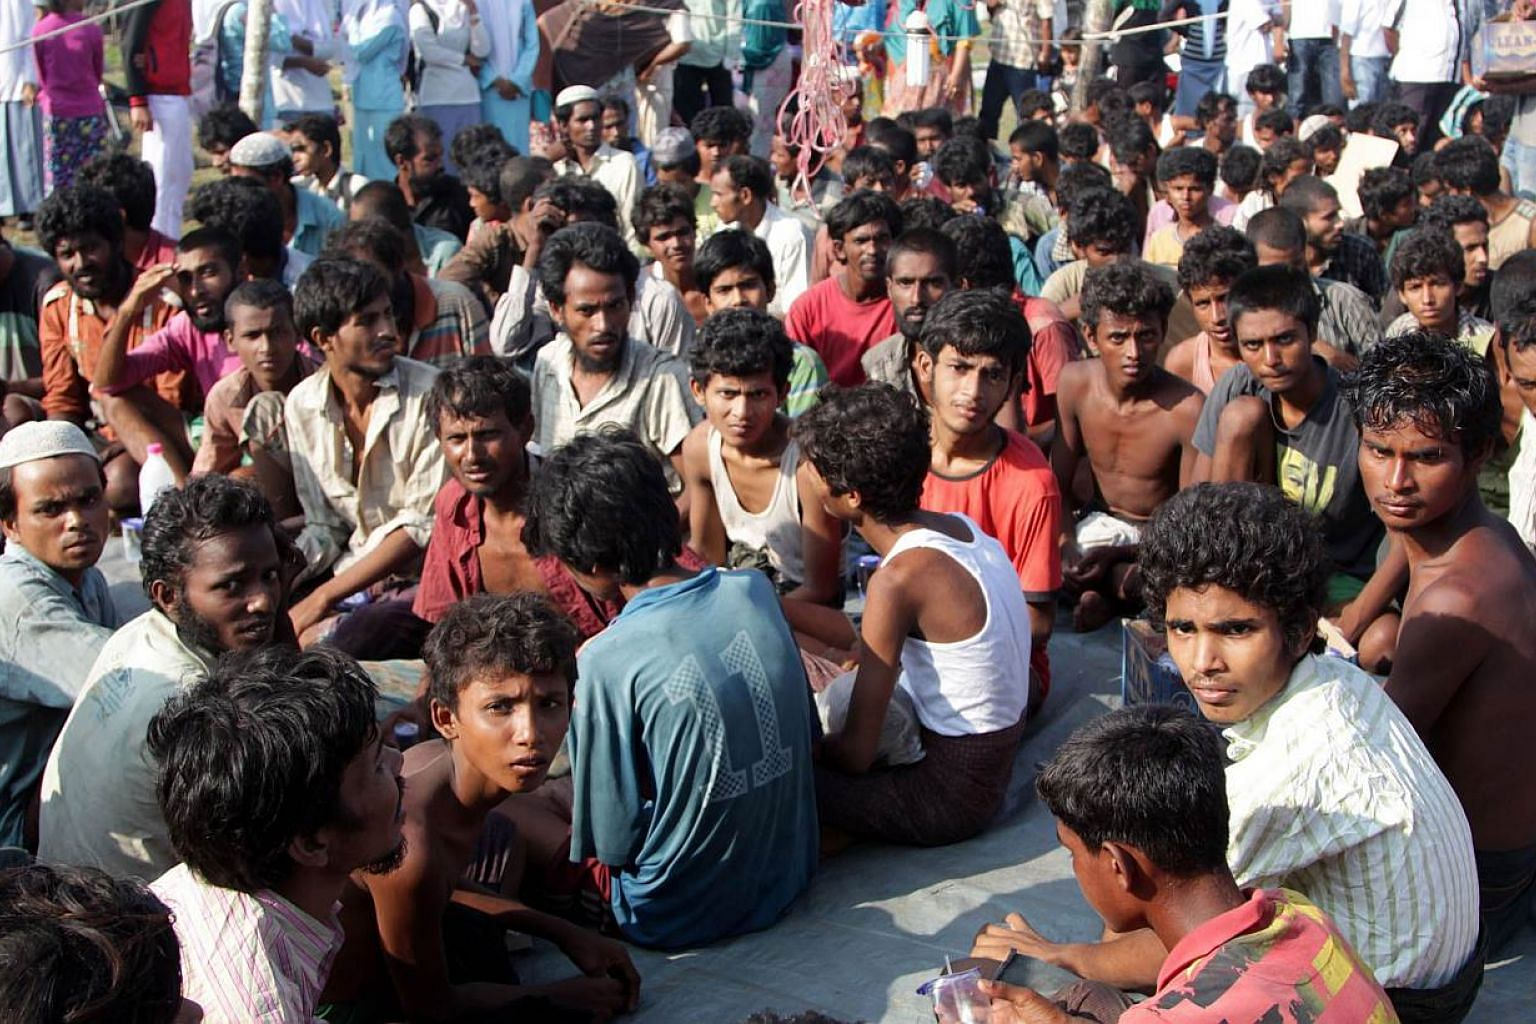 Refugees from Myanmar and Bangladesh are seen in a camp after their rescue by Aceh fisherman in Julok, East Aceh, Sumatra, Indonesia, on May 20, 2015. - PHOTO: AFP